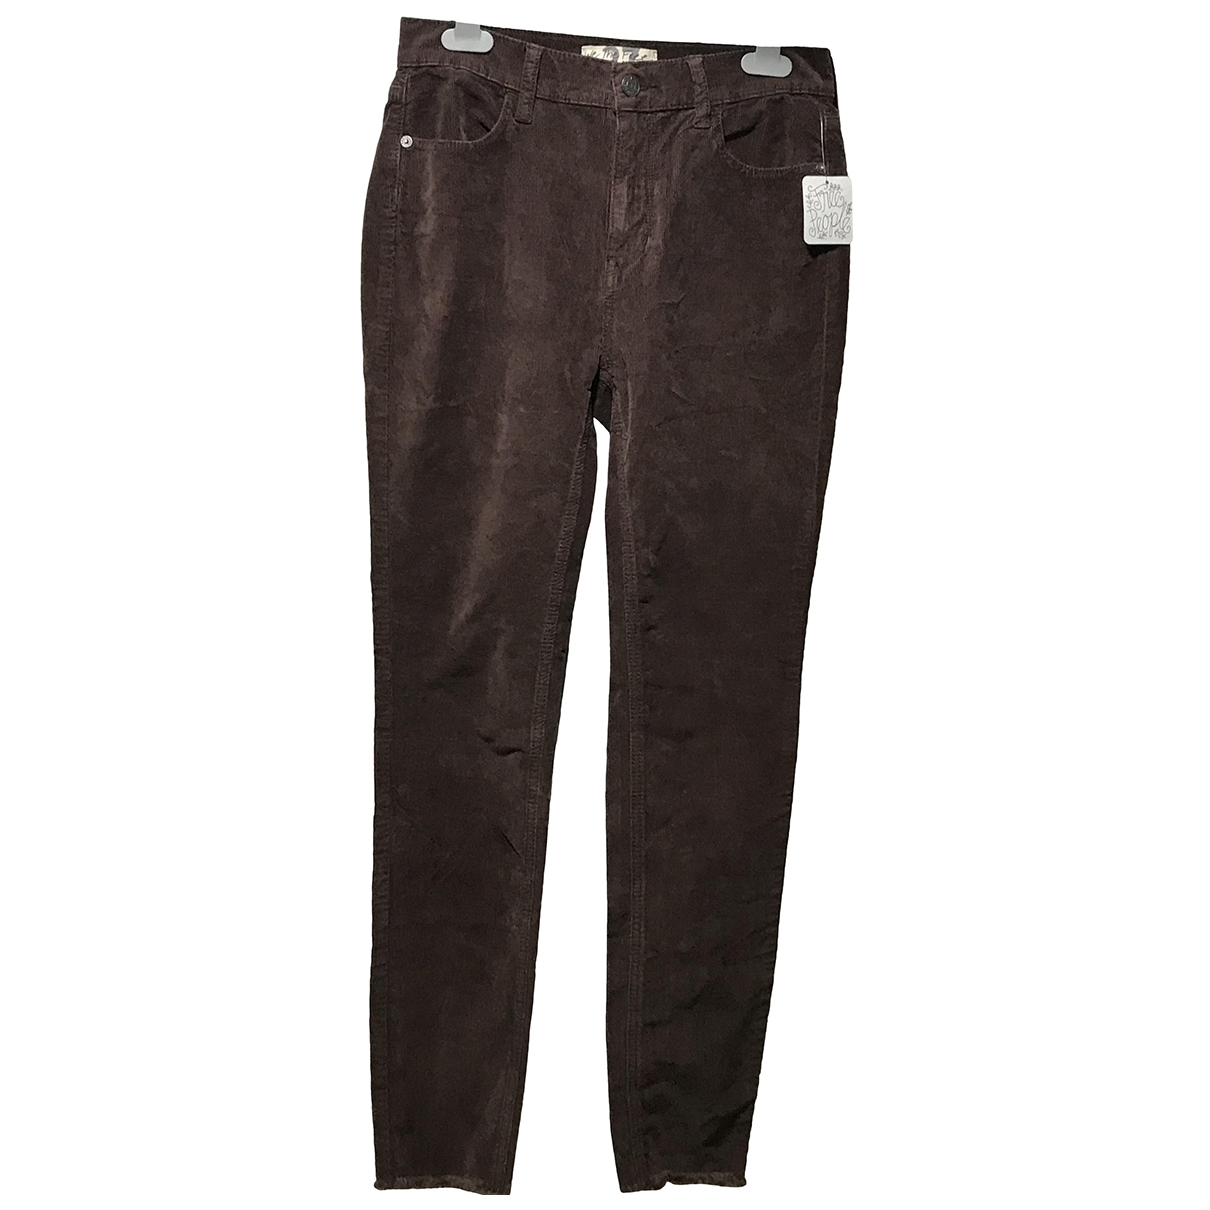 Free People N Brown Denim - Jeans Trousers for Women 10 UK